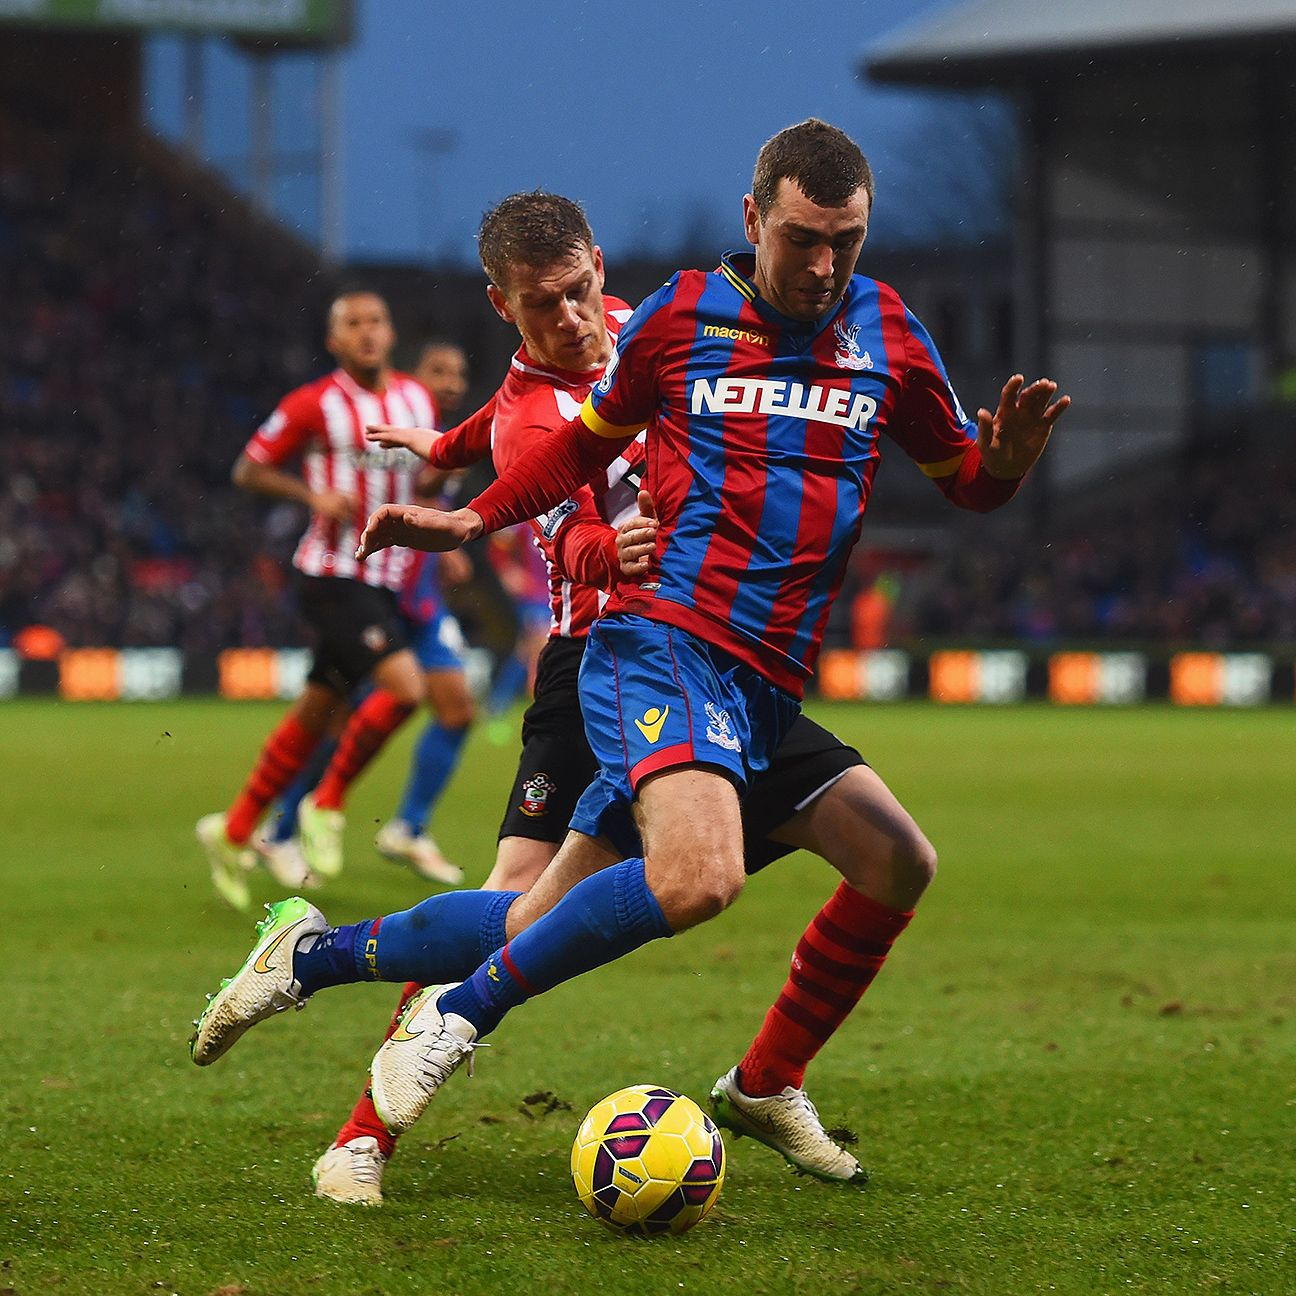 James McArthur helped spearhead Crystal Palace's second half surge up the table.